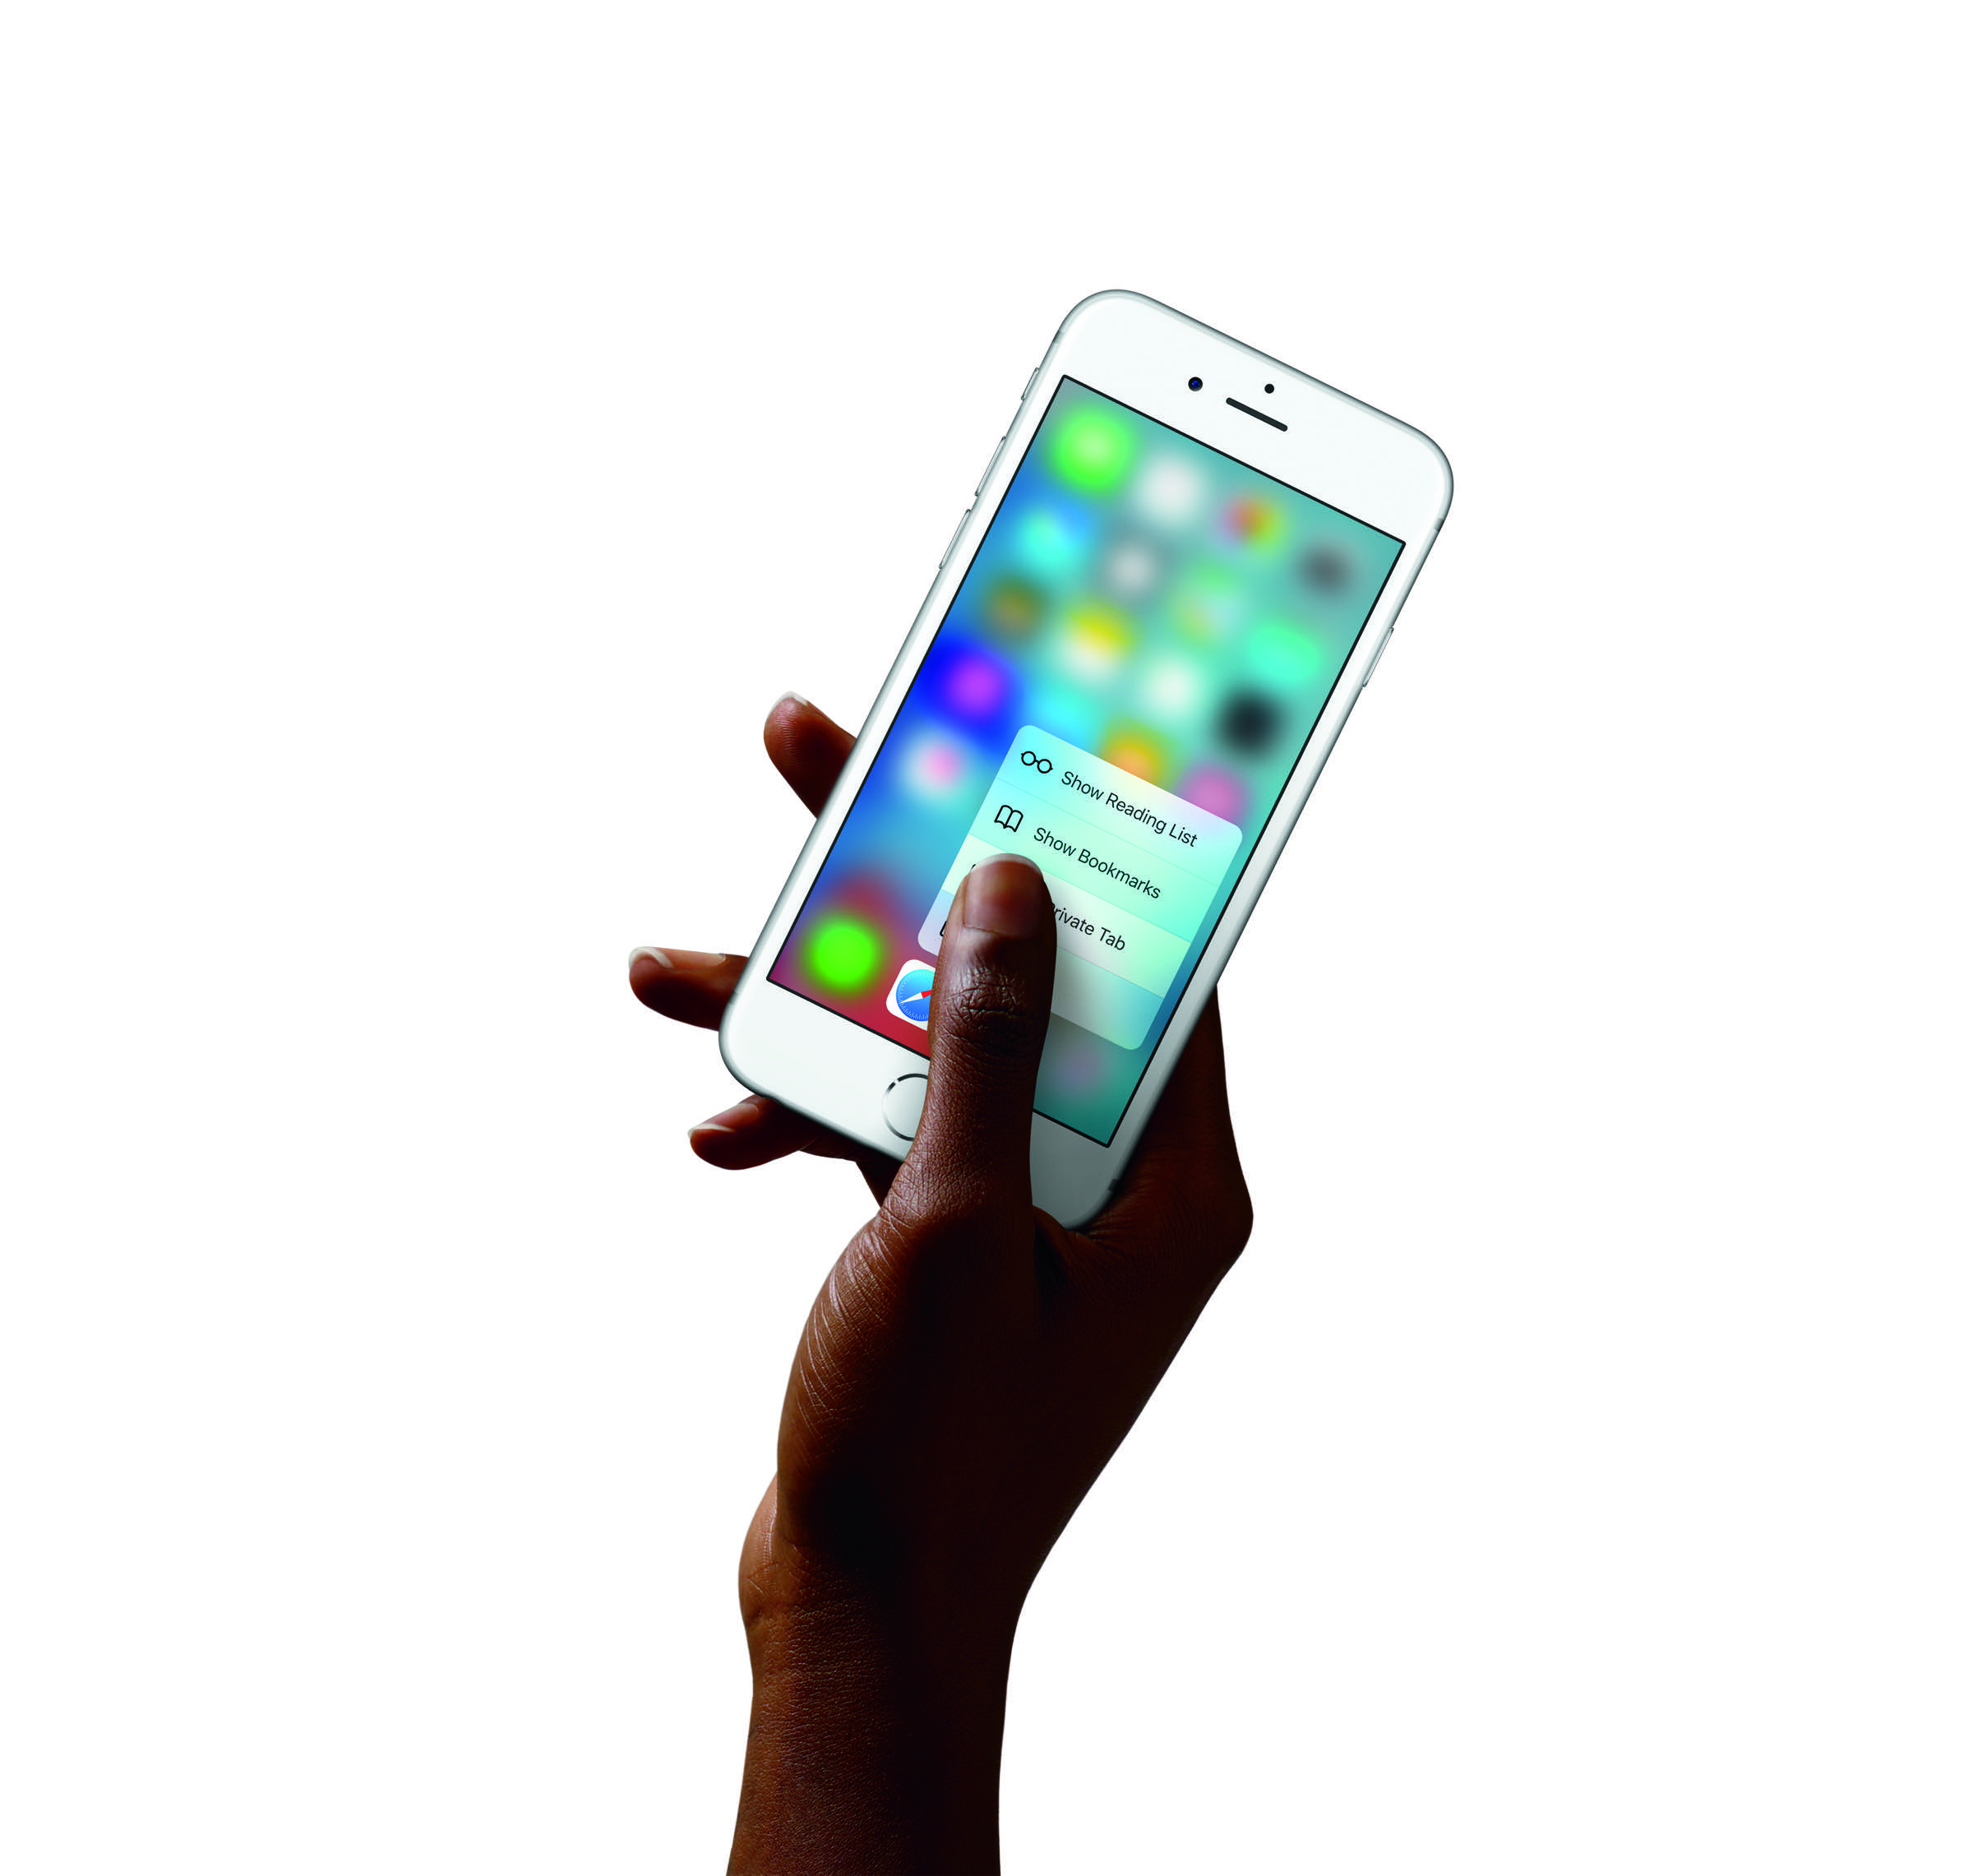 iPhone 6s and iPhone 6s Plus Release: What You Need To Know